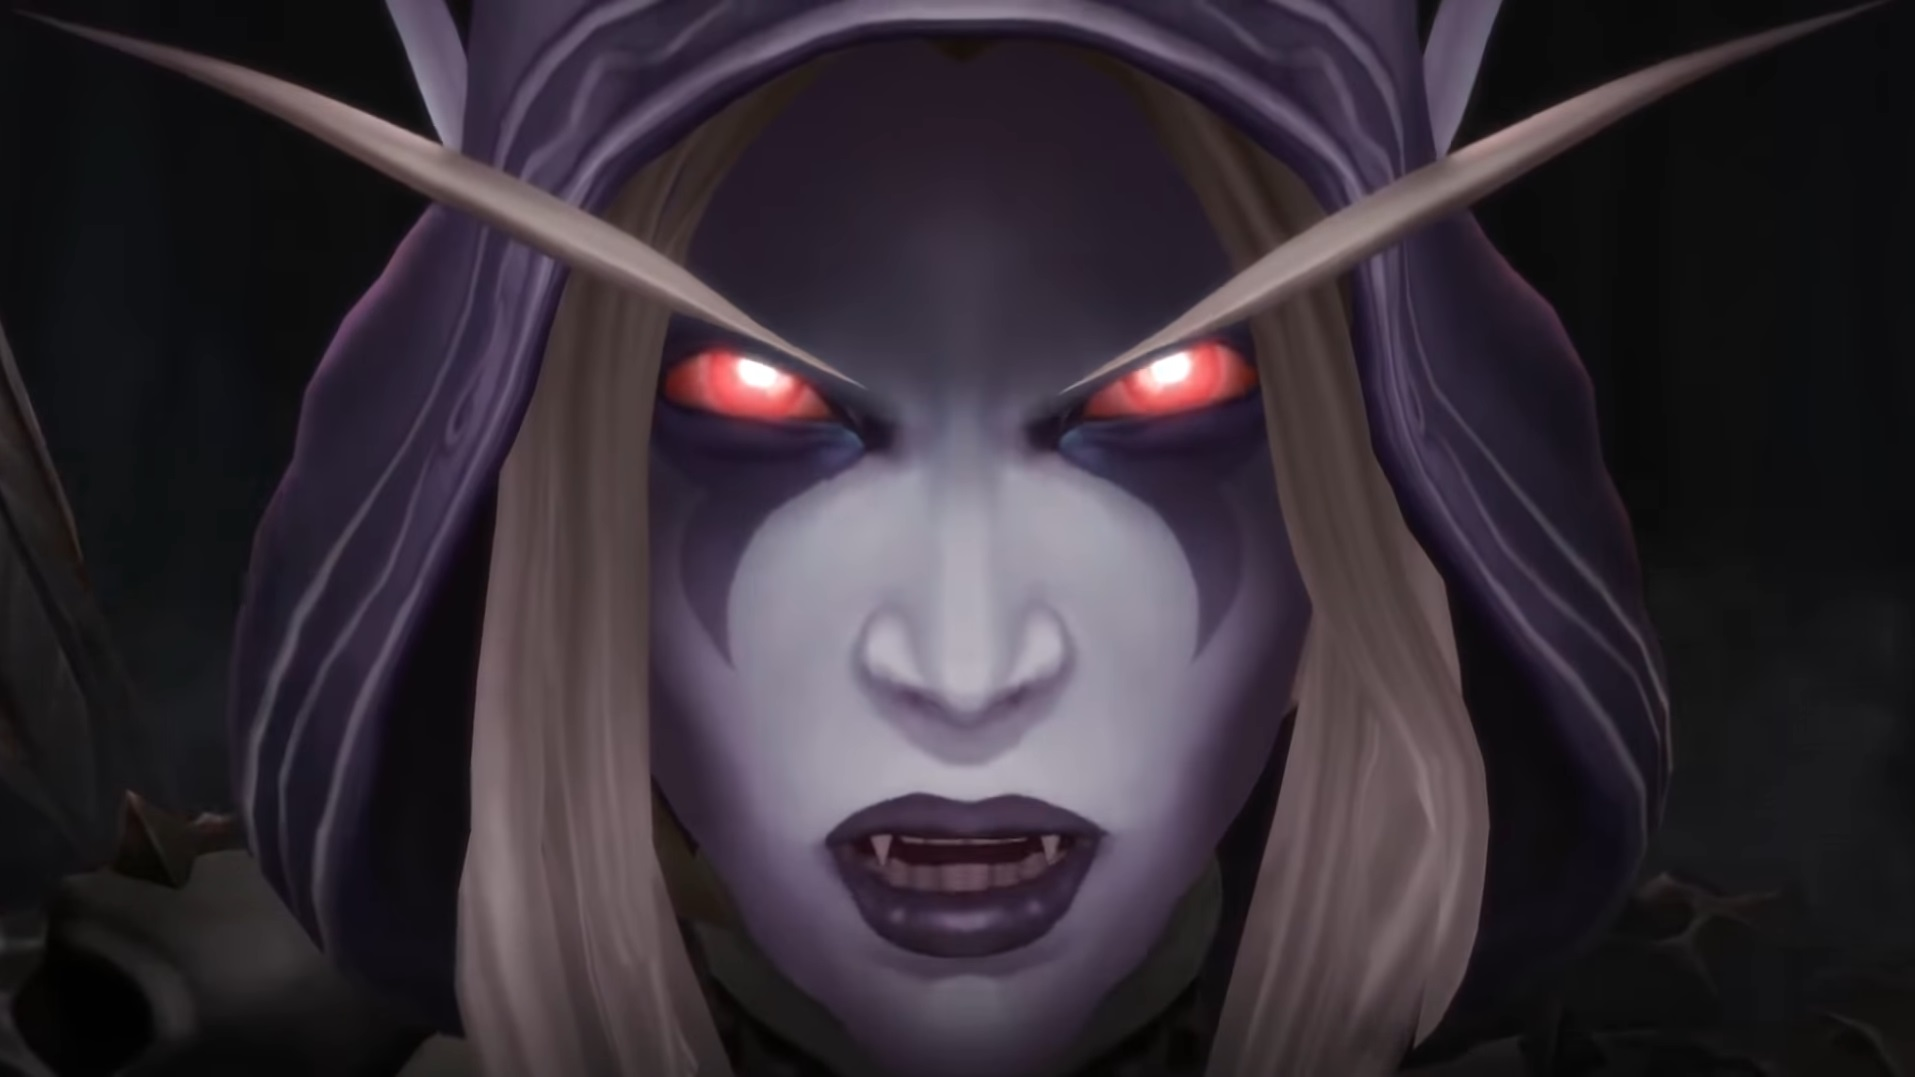 WoW Lordaeron Sylvanas Banshee mode activate